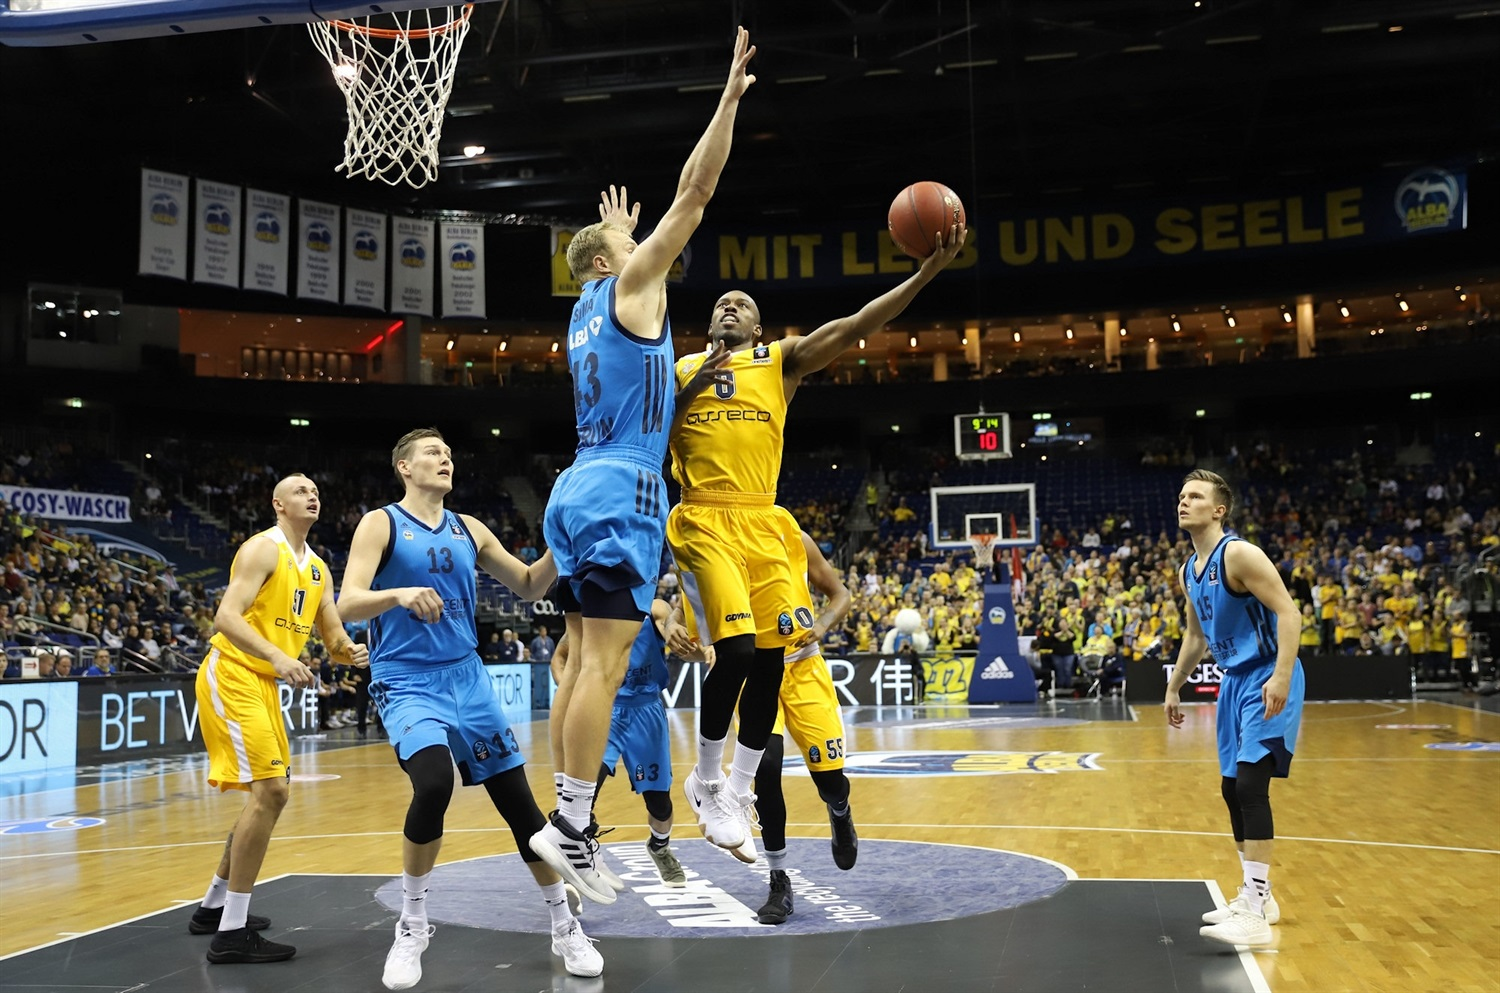 James Florence - Arka Gdynia (photo Andreas Knopf - ALBA) - EC18